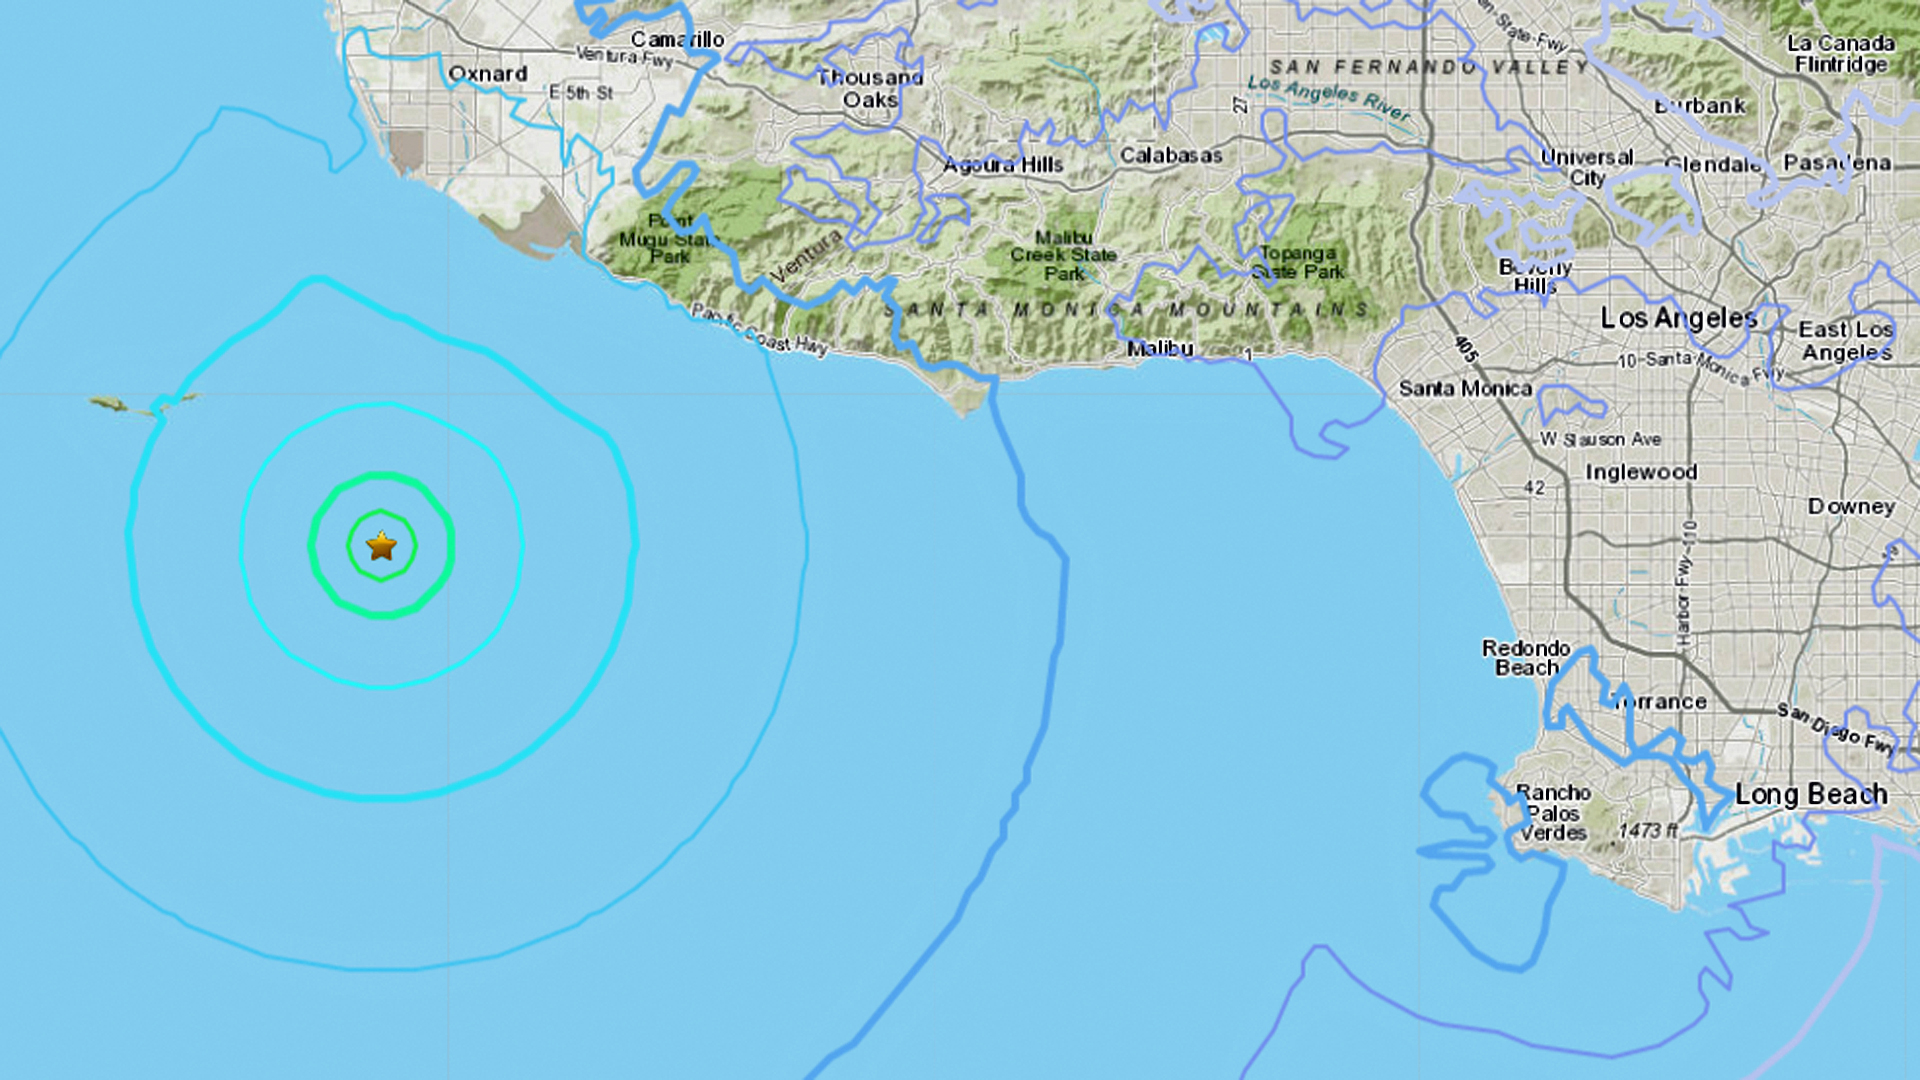 A 4.0 magnitude earthquake hit about 19 miles south of Oxnard on Jan. 2, 2019. (Credit: USGS)